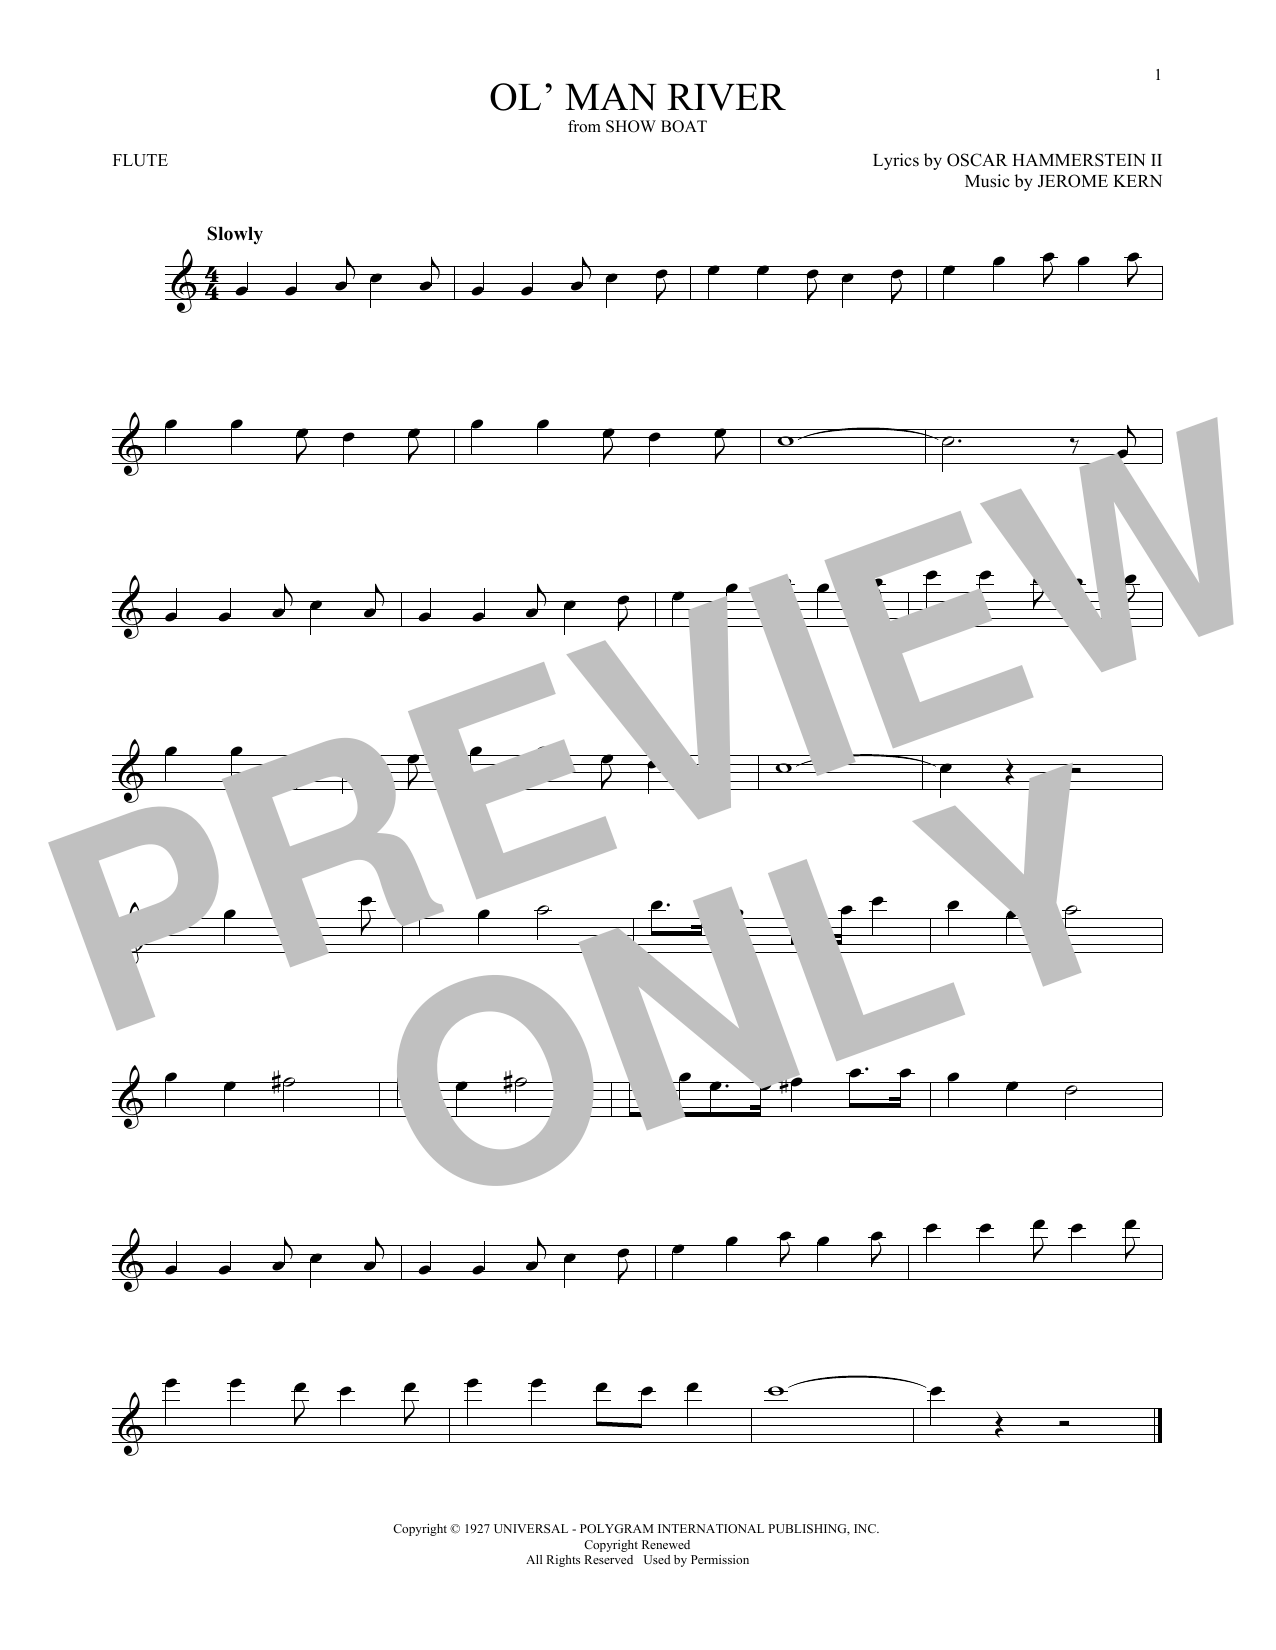 Oscar Hammerstein II Ol' Man River sheet music notes and chords. Download Printable PDF.